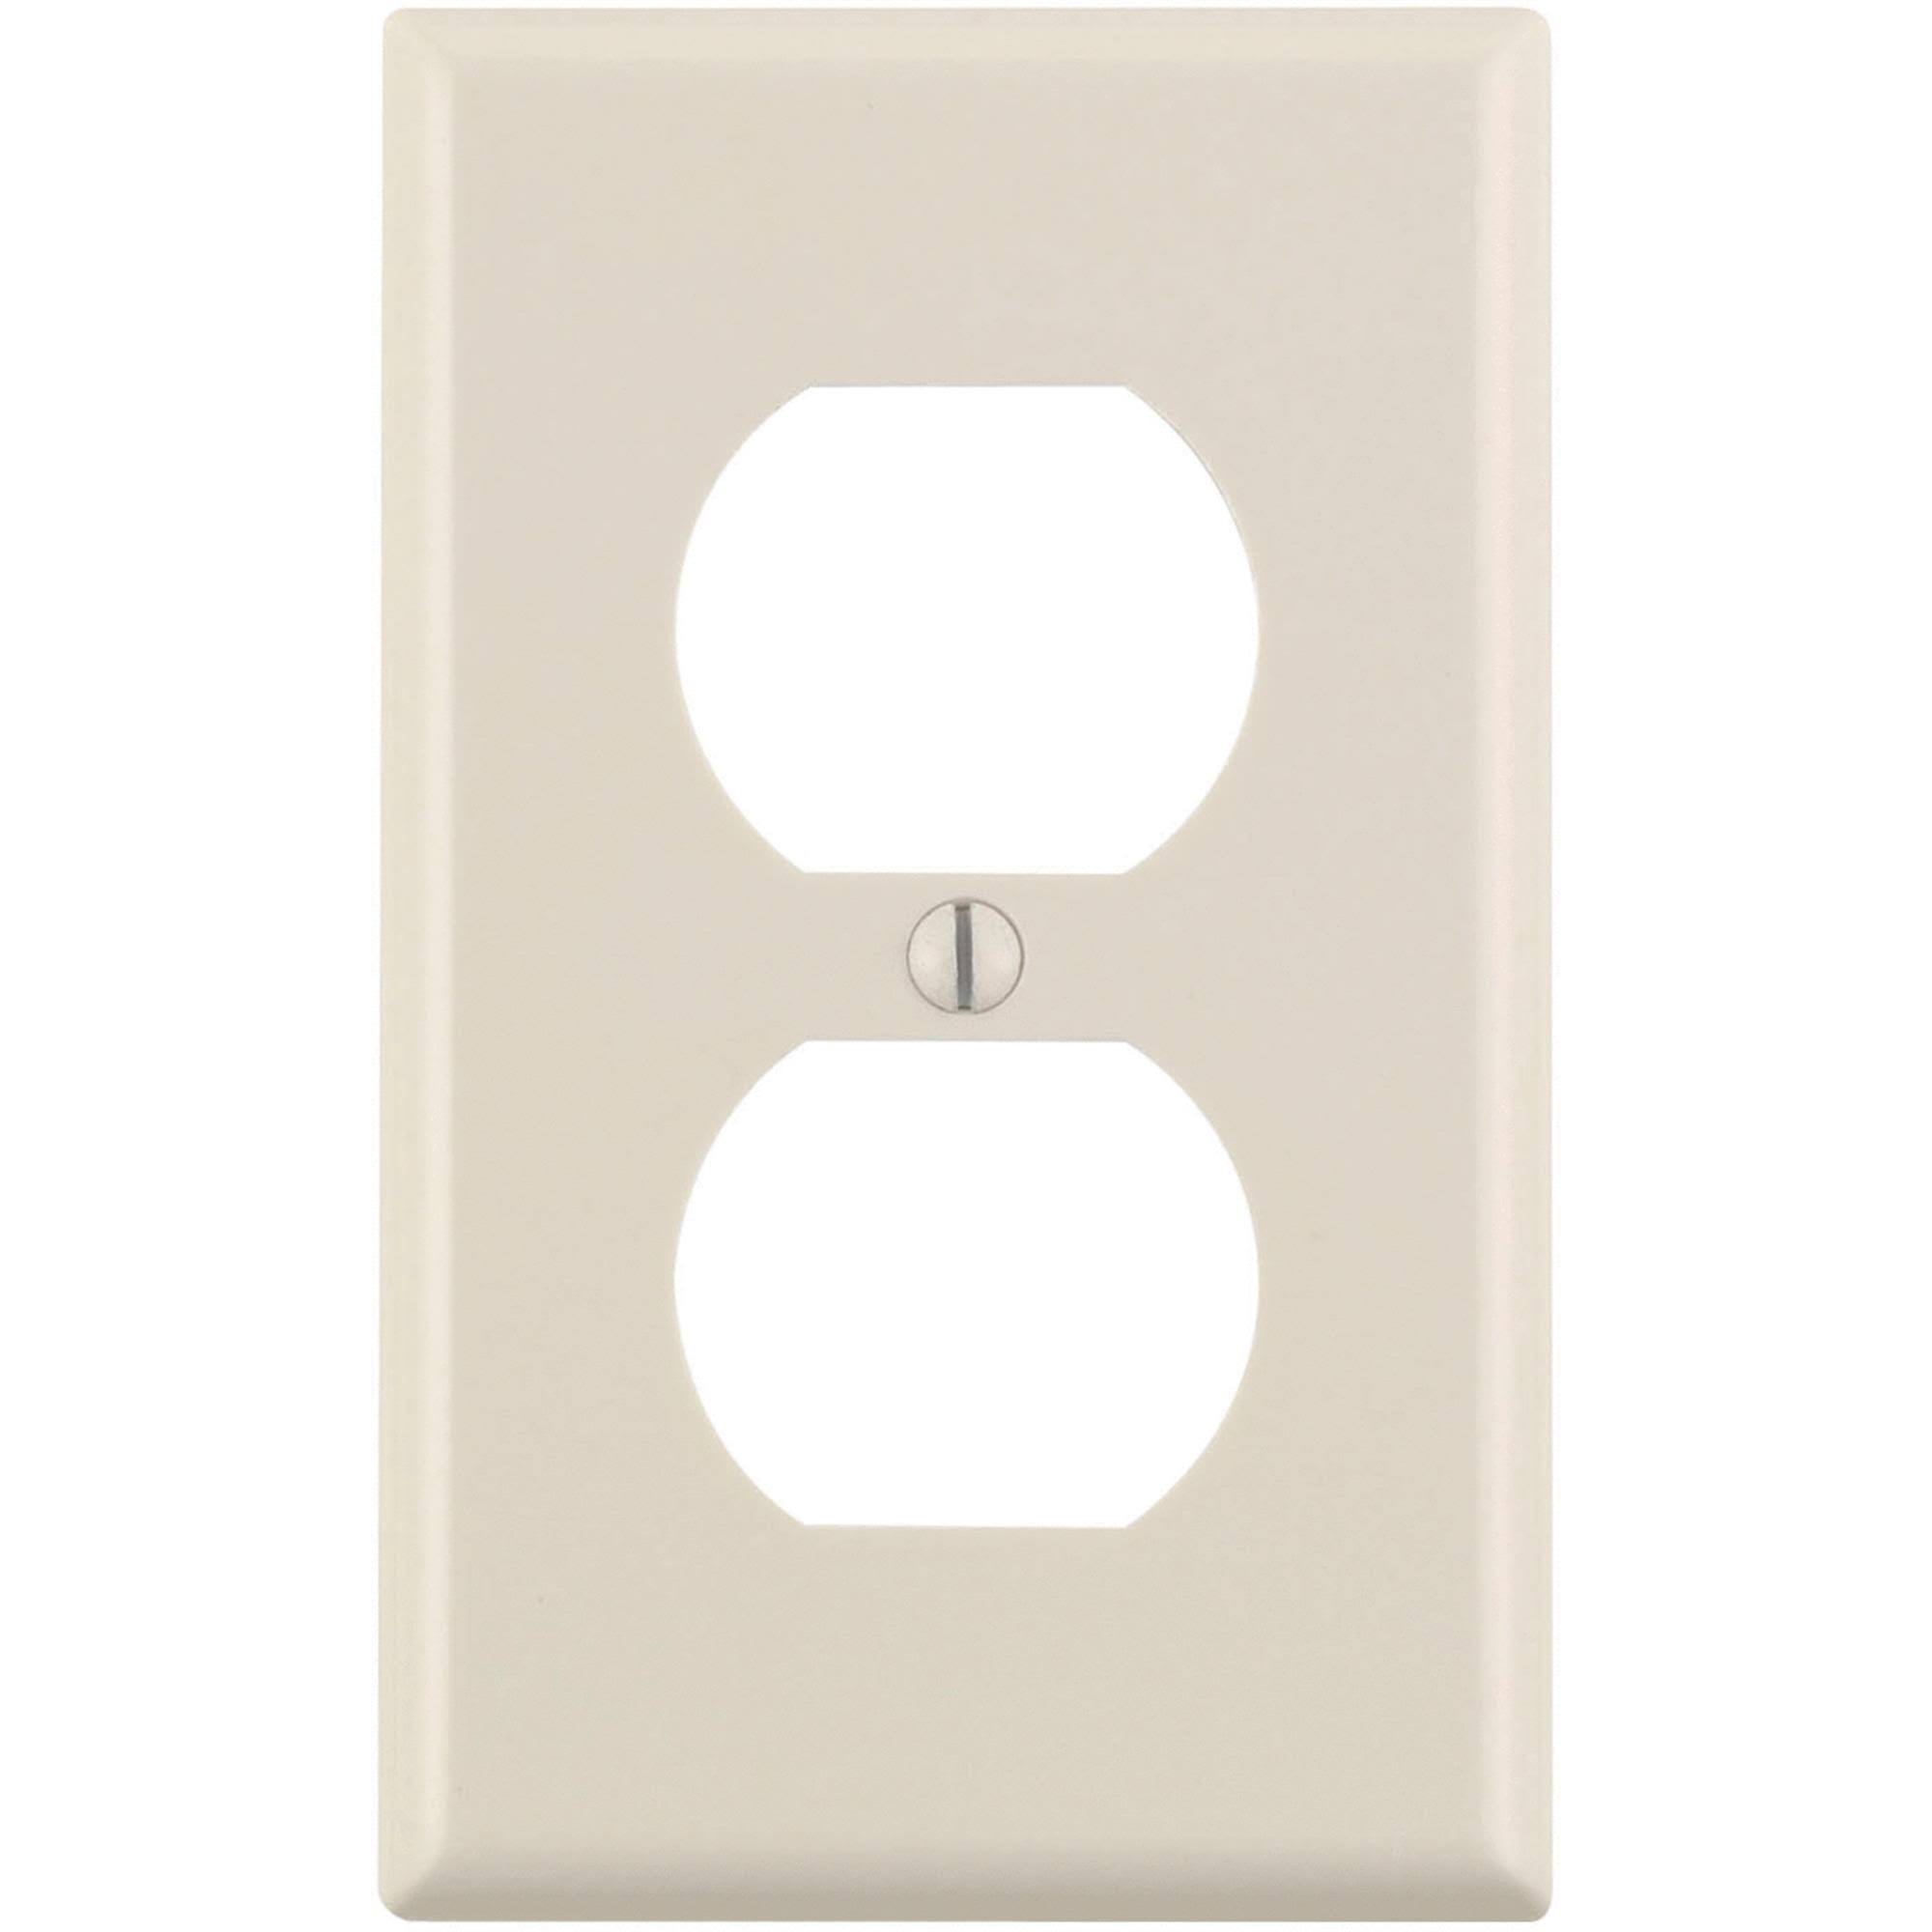 Leviton 1-Gang Duplex Outlet Wall Plate - Light Almond